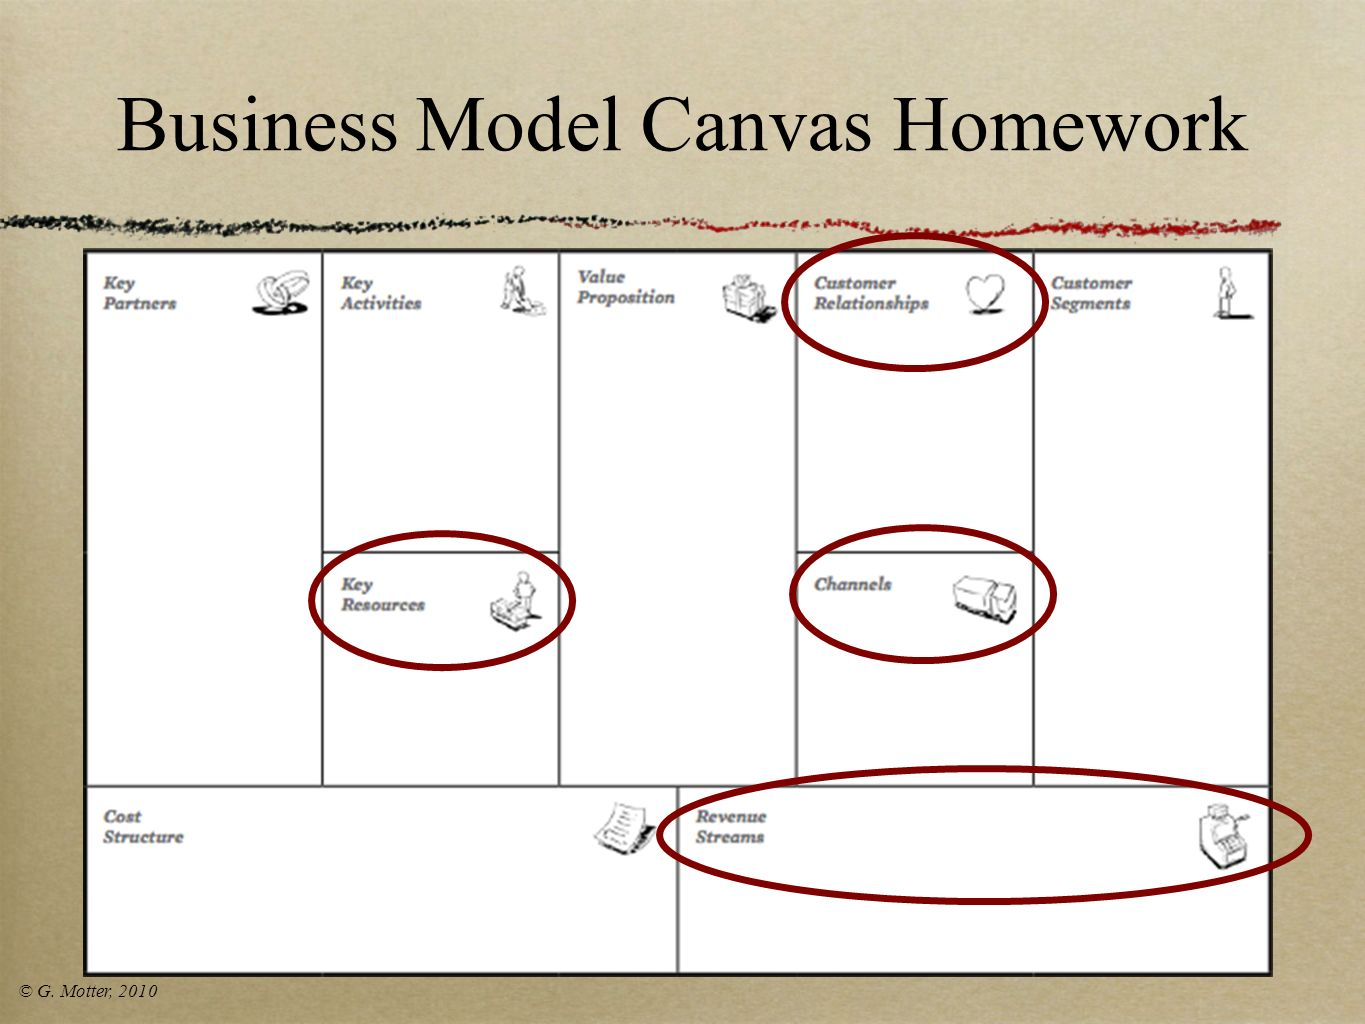 Business Model Canvas Homework